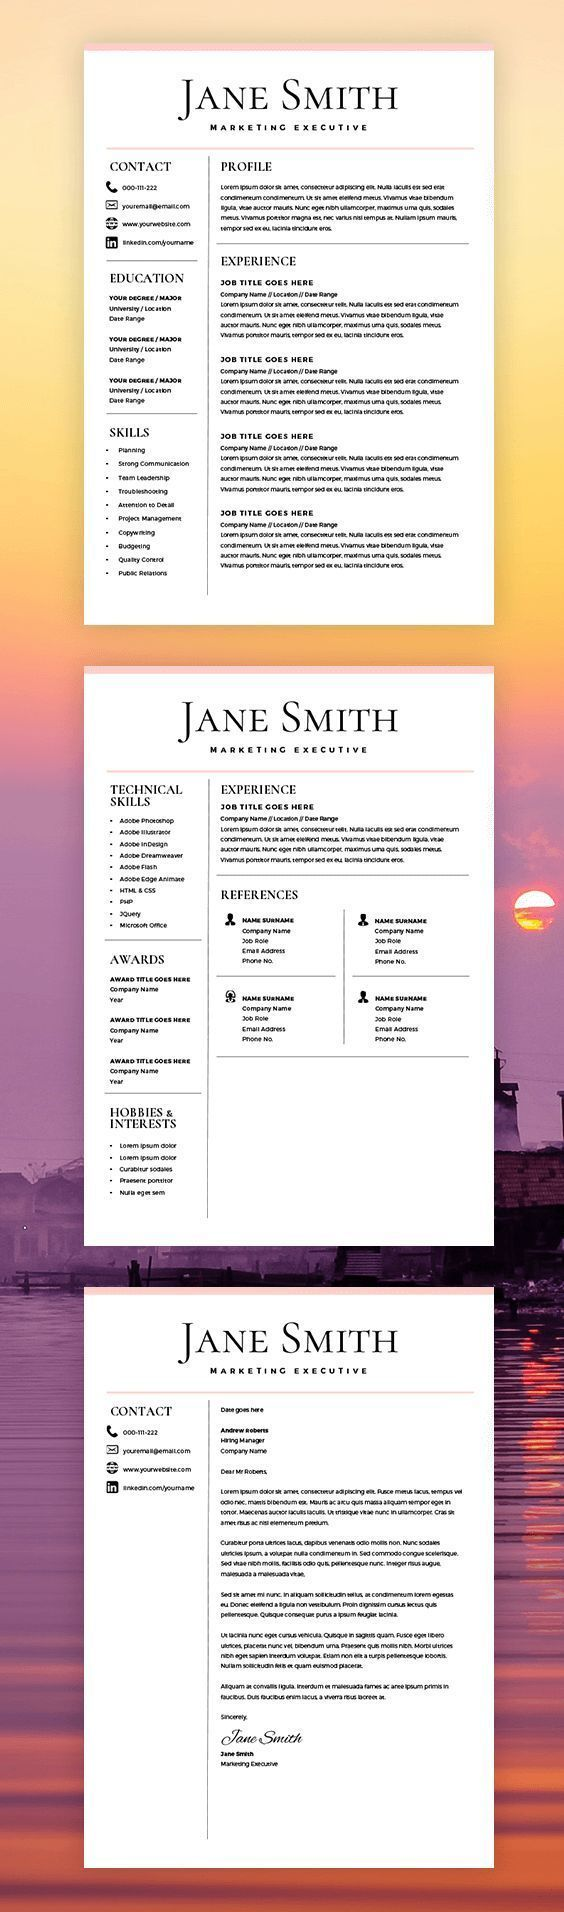 Resume Template - CV Template + Cover Letter - MS Word on Mac / PC ...